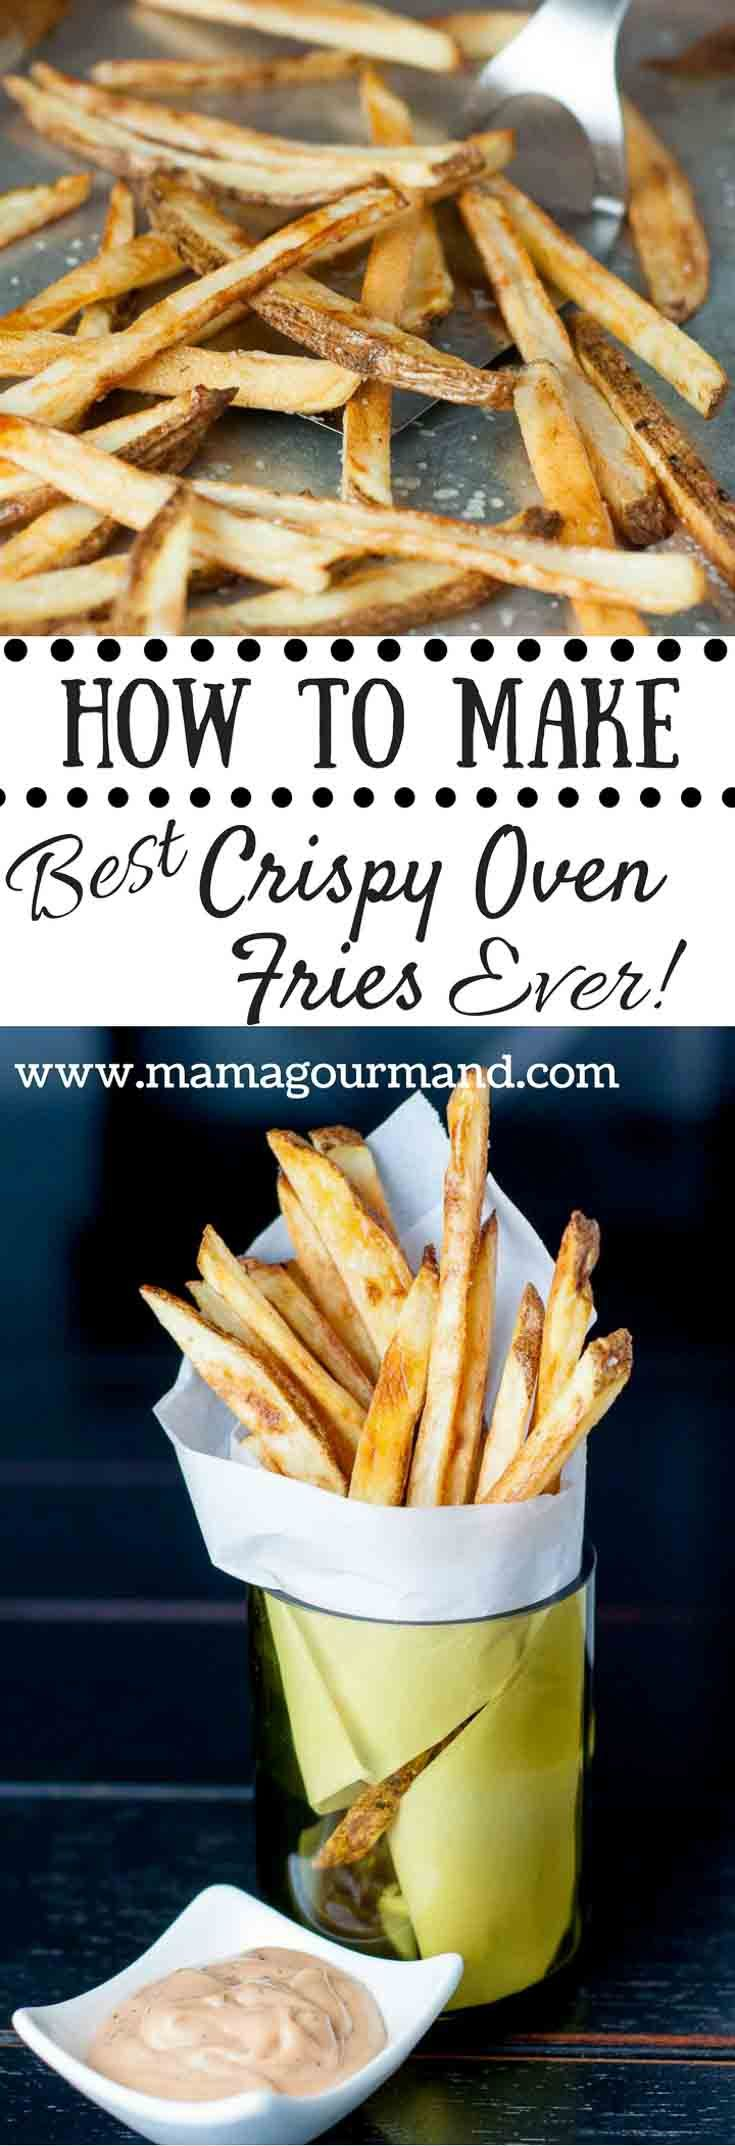 My Best Crispy Oven Baked Fries with Fry Sauce takes all the tips out there on achieving perfectly baked fries and combines them in one easy to follow recipe. http://www.mamagourmand.com via @mamagourmand